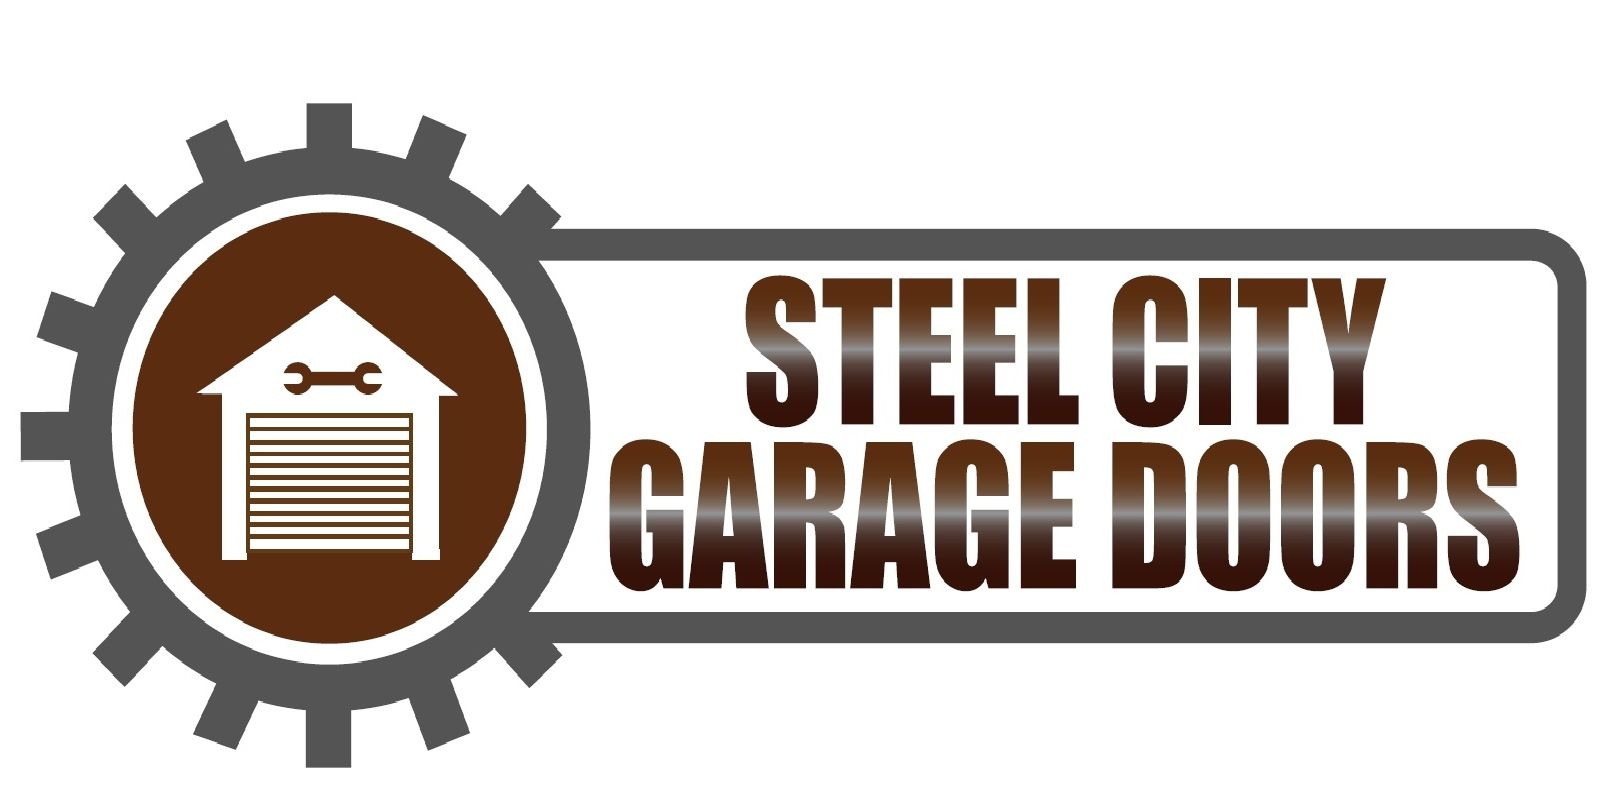 Garage door repair installation in pittsburgh pa steel city steel city garage doors logo rubansaba